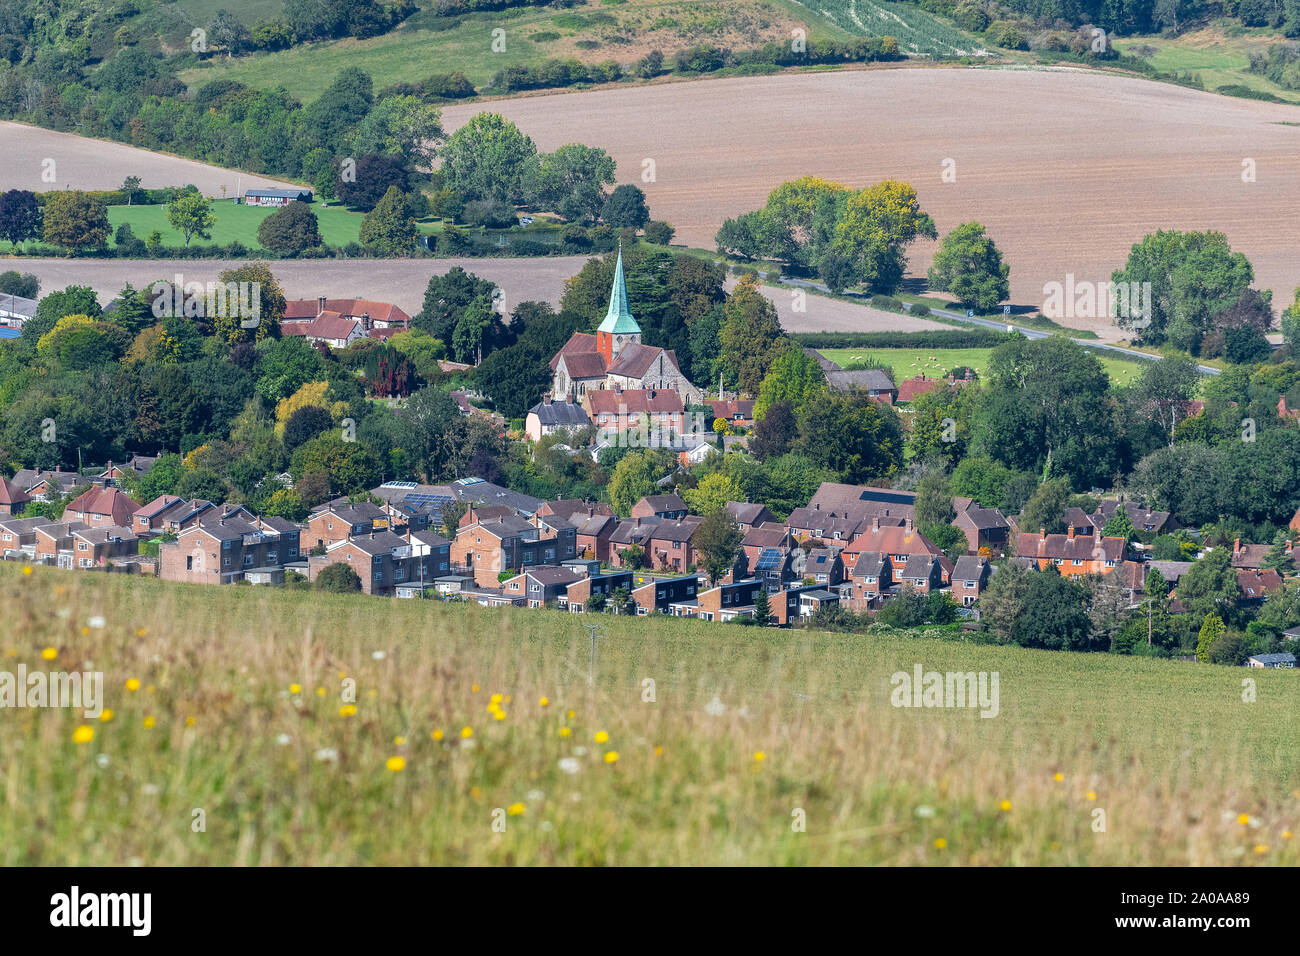 Fabulous views from the downs from Harting Downs towards the village of South Harting and The Parish Church of Saint Mary and Saint Gabriel Harting b Stock Photo